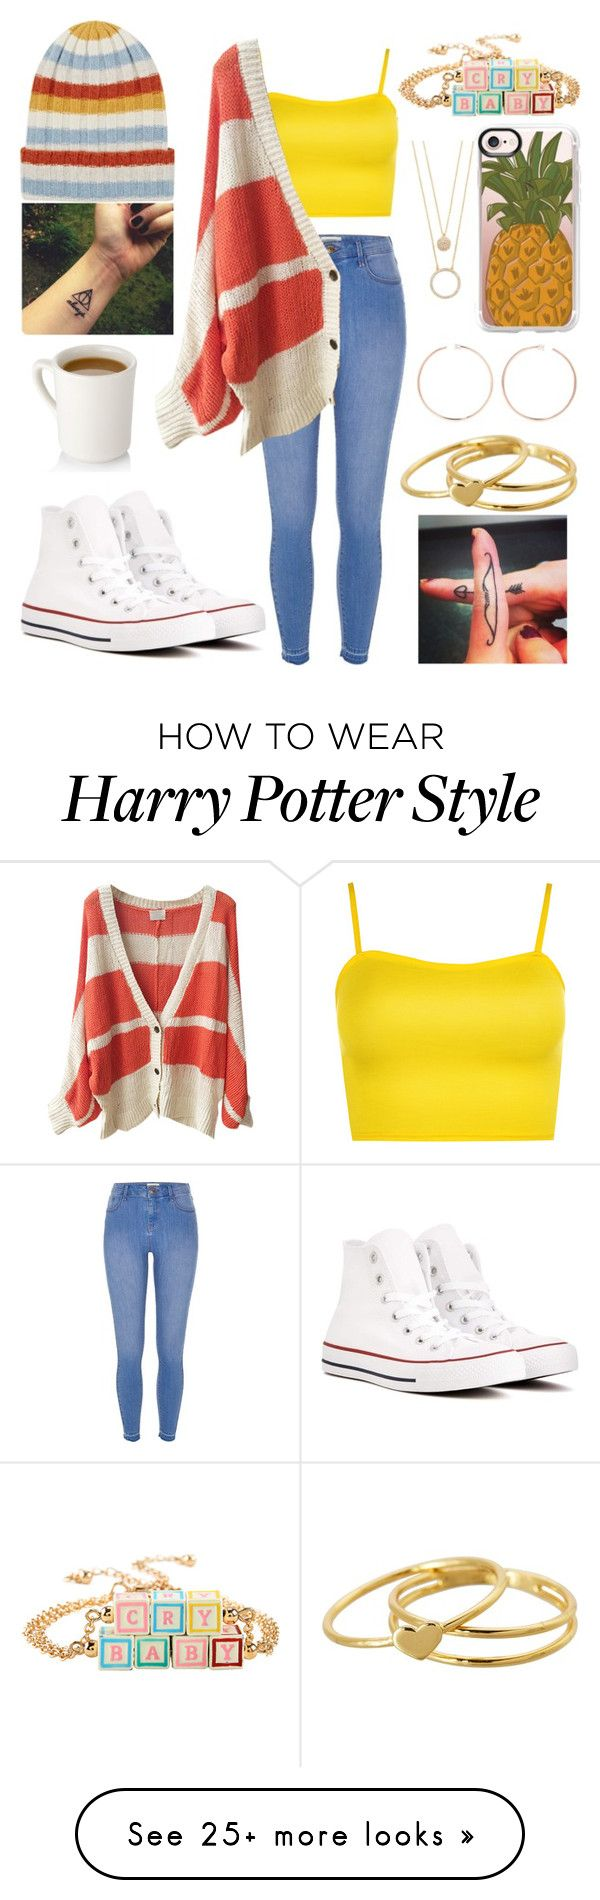 """Untitled #1087"" by loves-5sos on Polyvore featuring The Elder Statesman, River Island, WearAll, Casetify, Hot Topic, Anita Ko, Kate Spade, Gorjana and Converse"